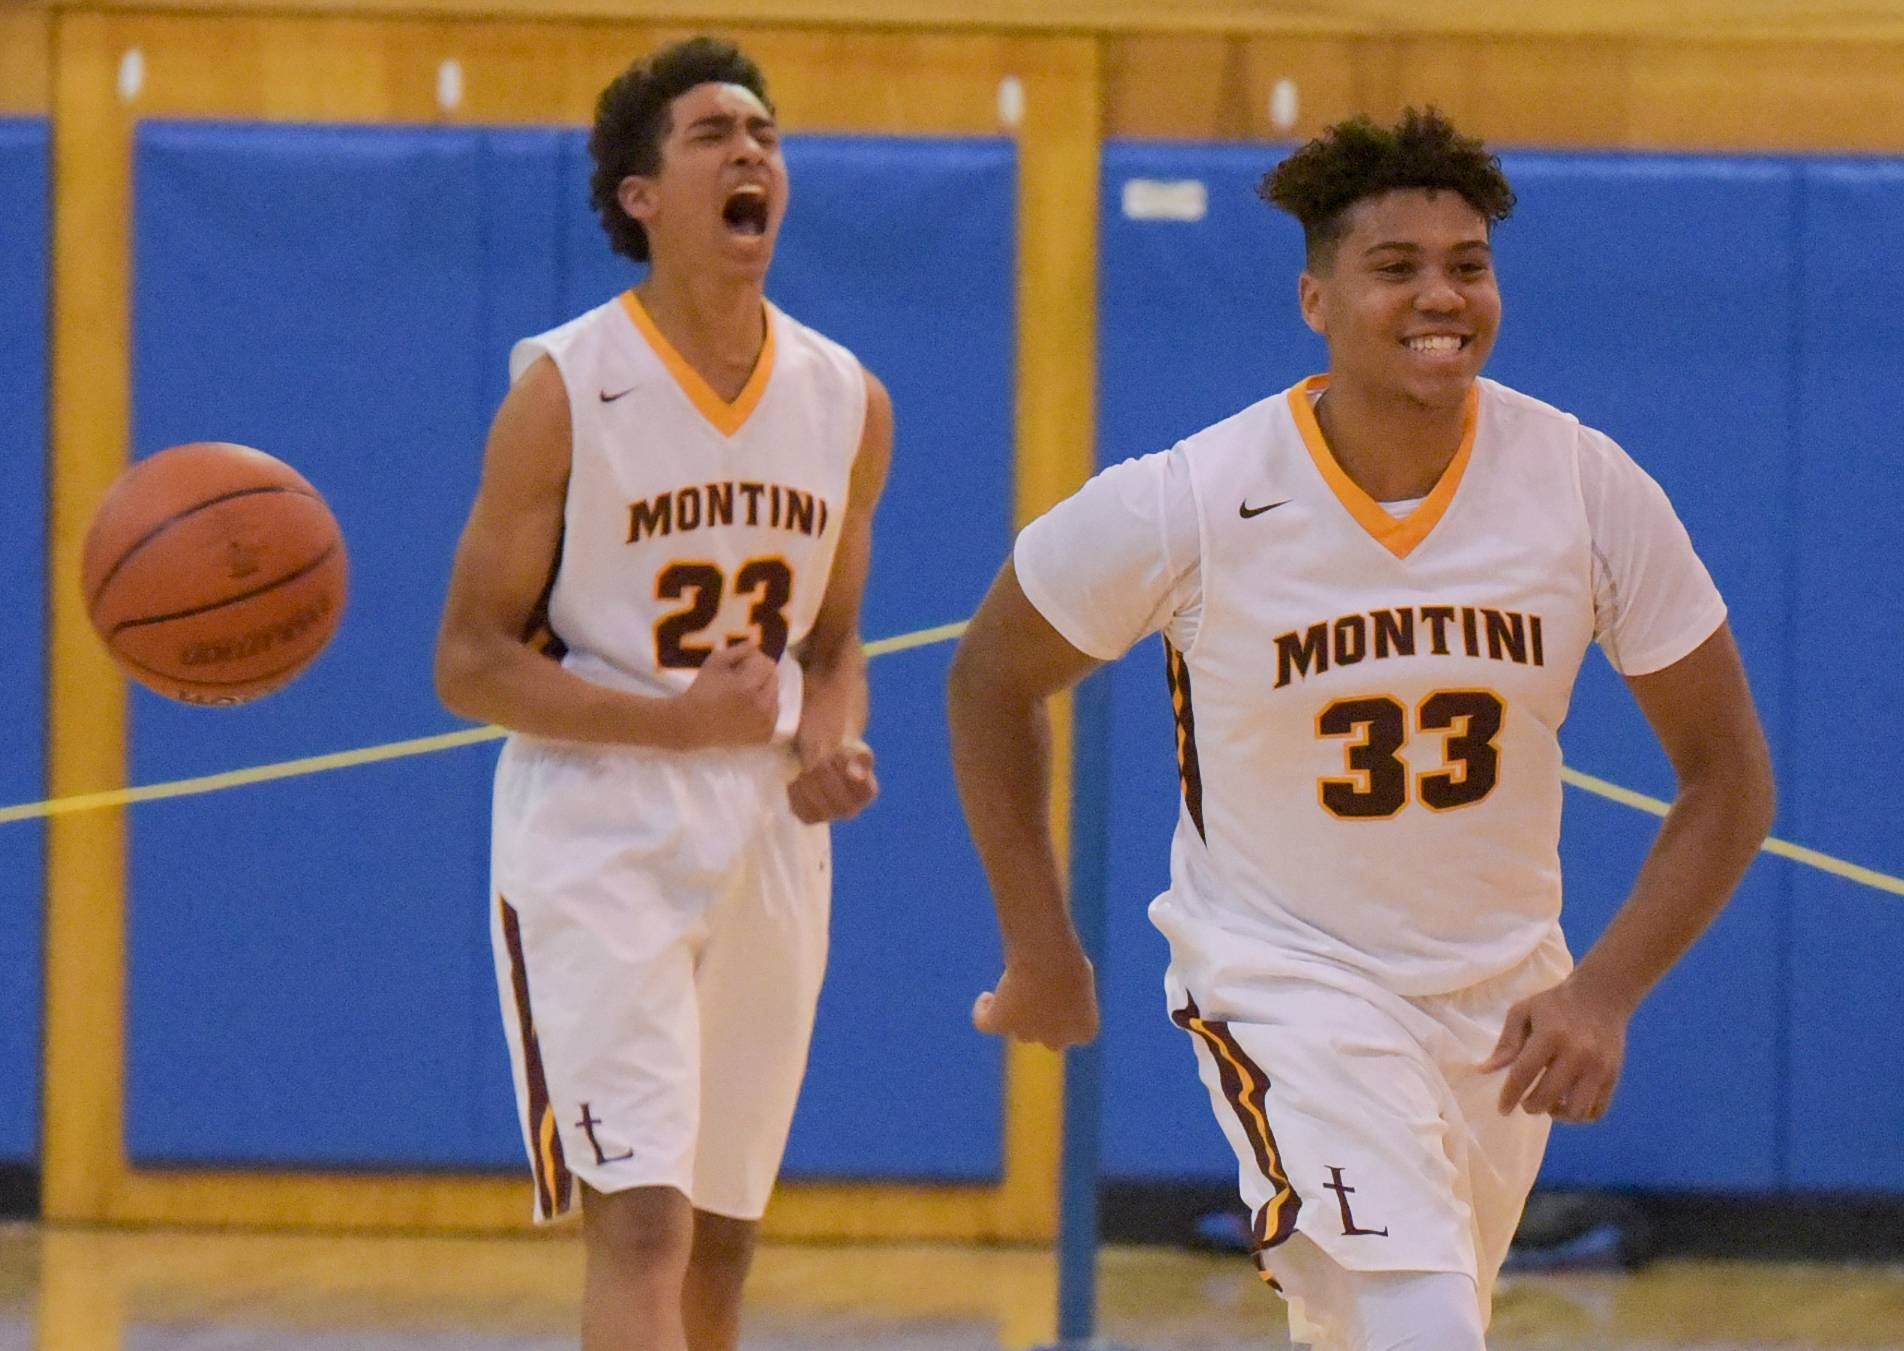 Montini's Kevin Brachmann and Jayston Williams celebrate the Broncos 87-83 win over Marmion Academy during the Class 3A regional boys basketball game Monday at Marmion Academy.